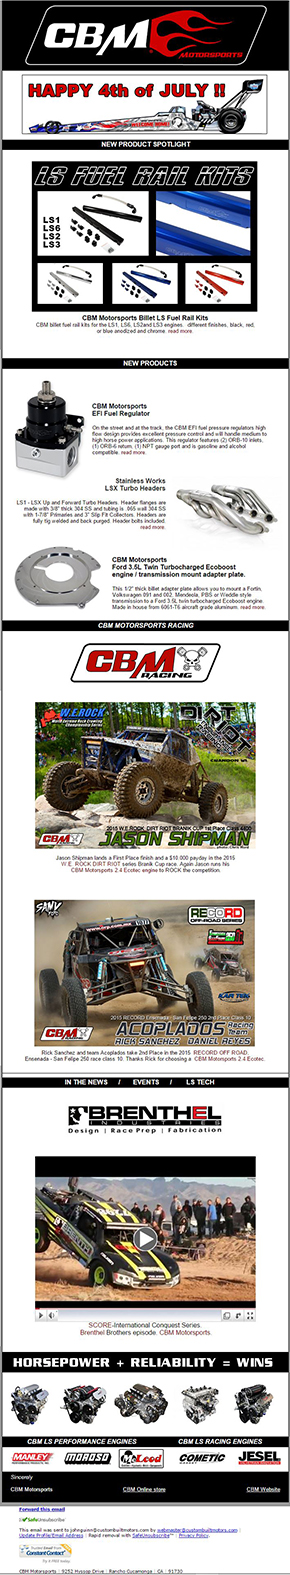 cbm news july 2015